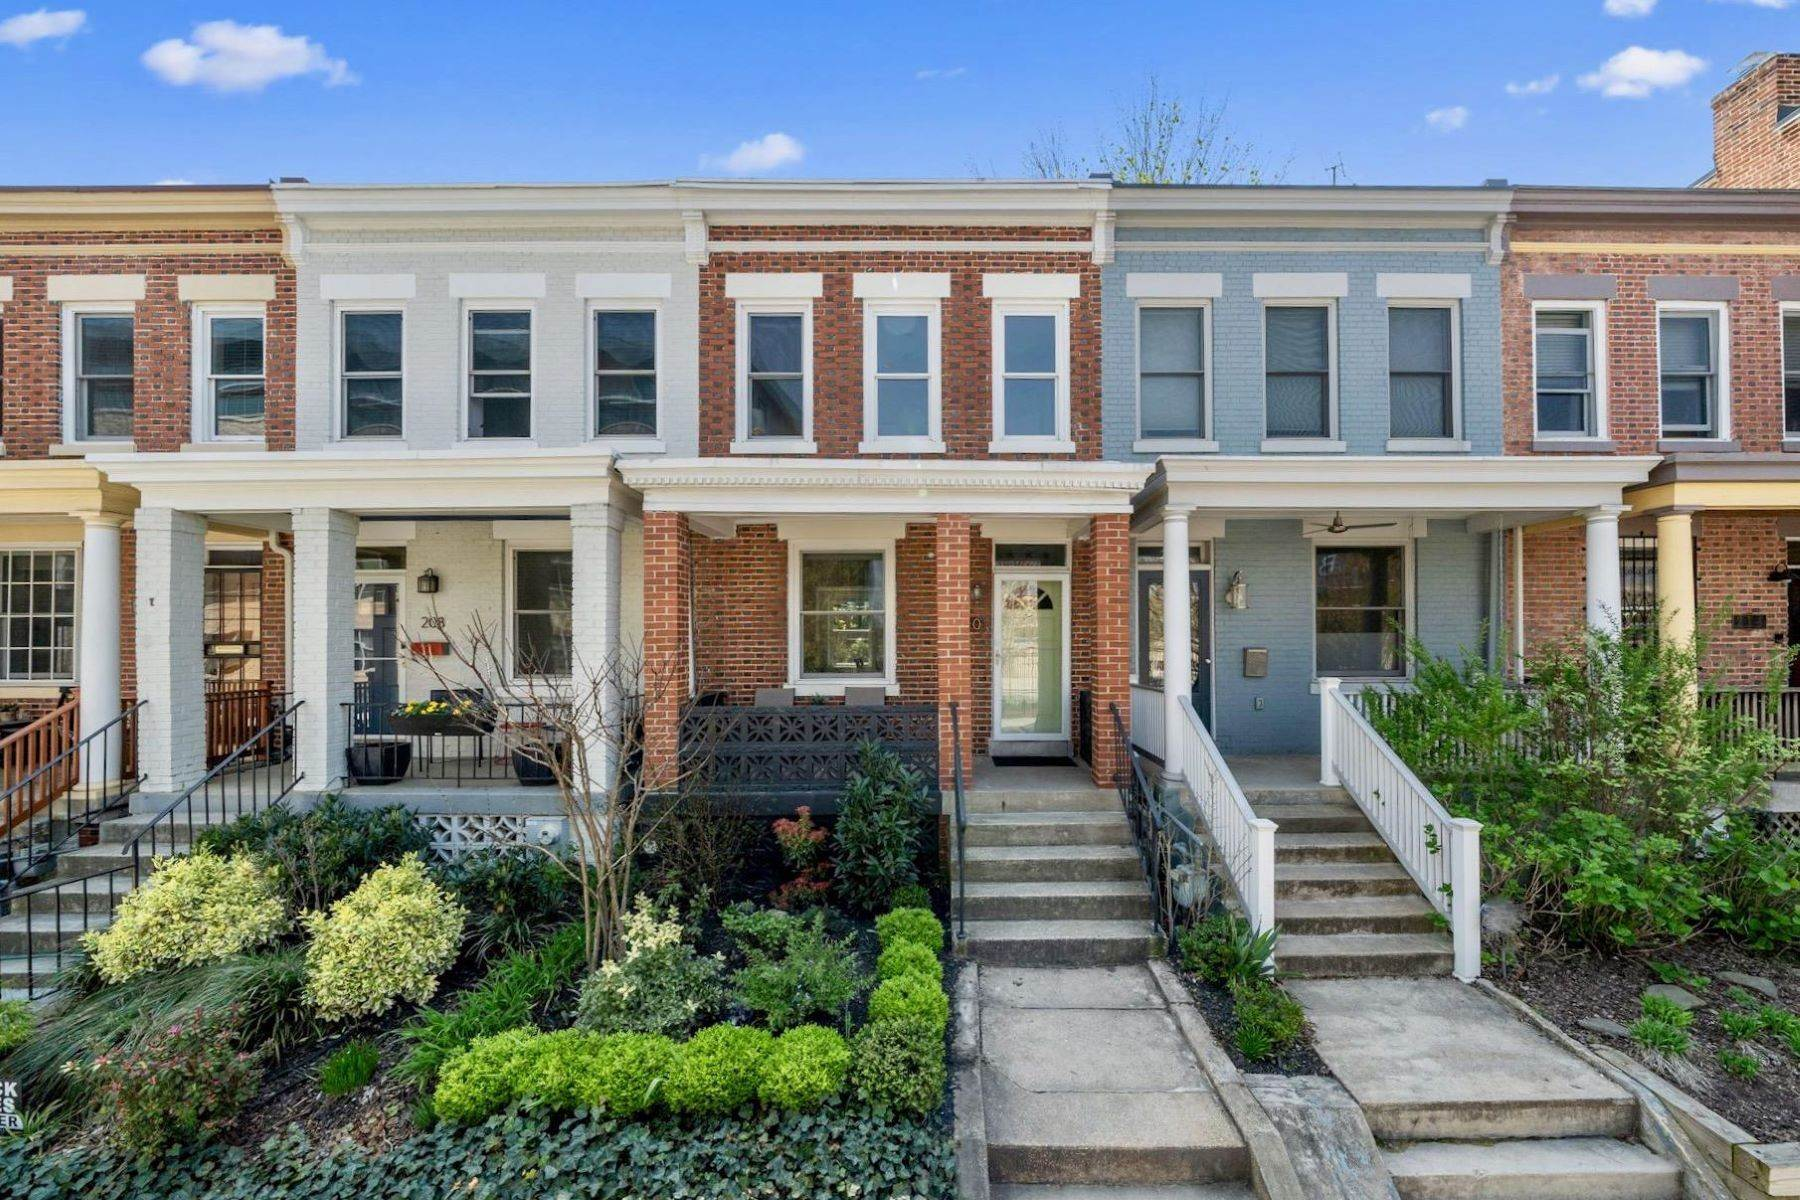 Property for Sale at Shaw, Washington, District Of Columbia, 20001 United States